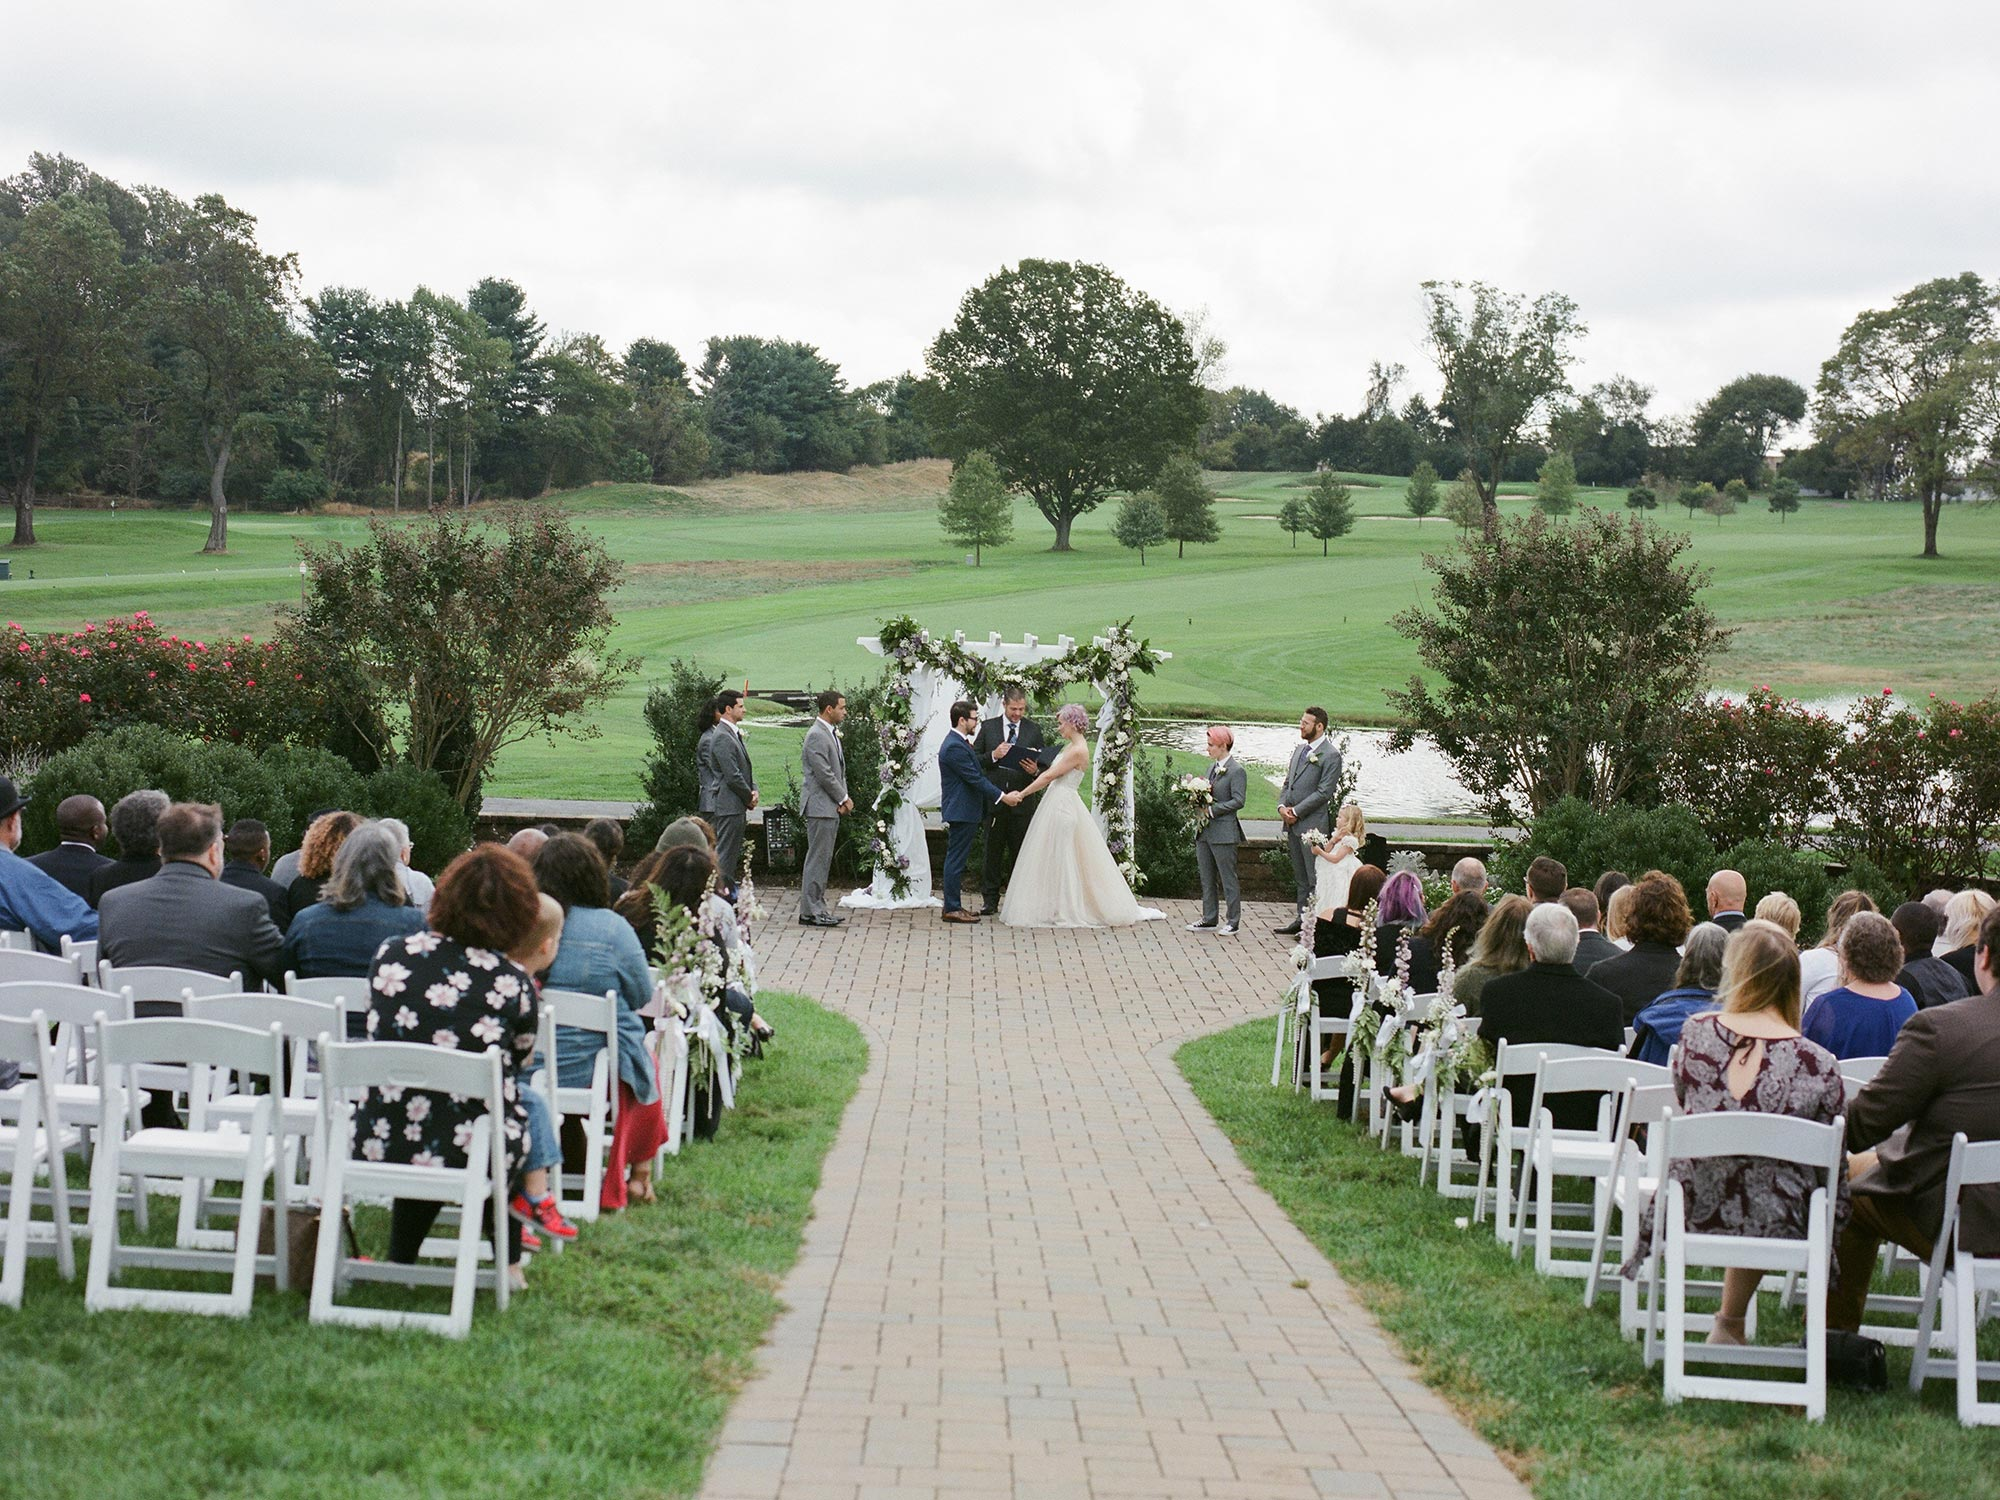 Chic Queer Wedding in West Chester Pennsylvania showing couple exchanging vows Judson Rappaport Photography